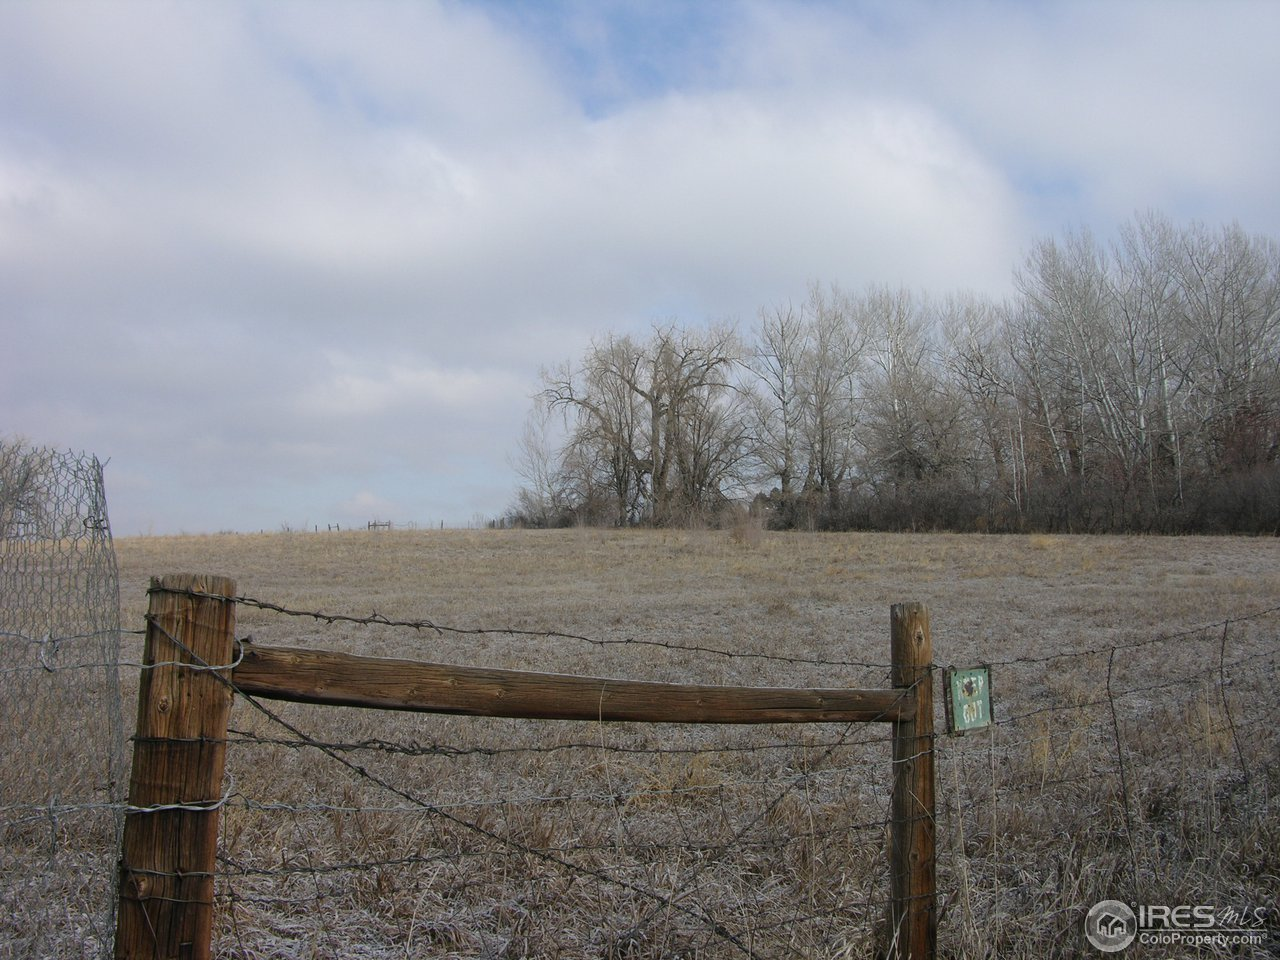 Image of Residential for Sale near Westminster, Colorado, in Jefferson county: 8.26 acres